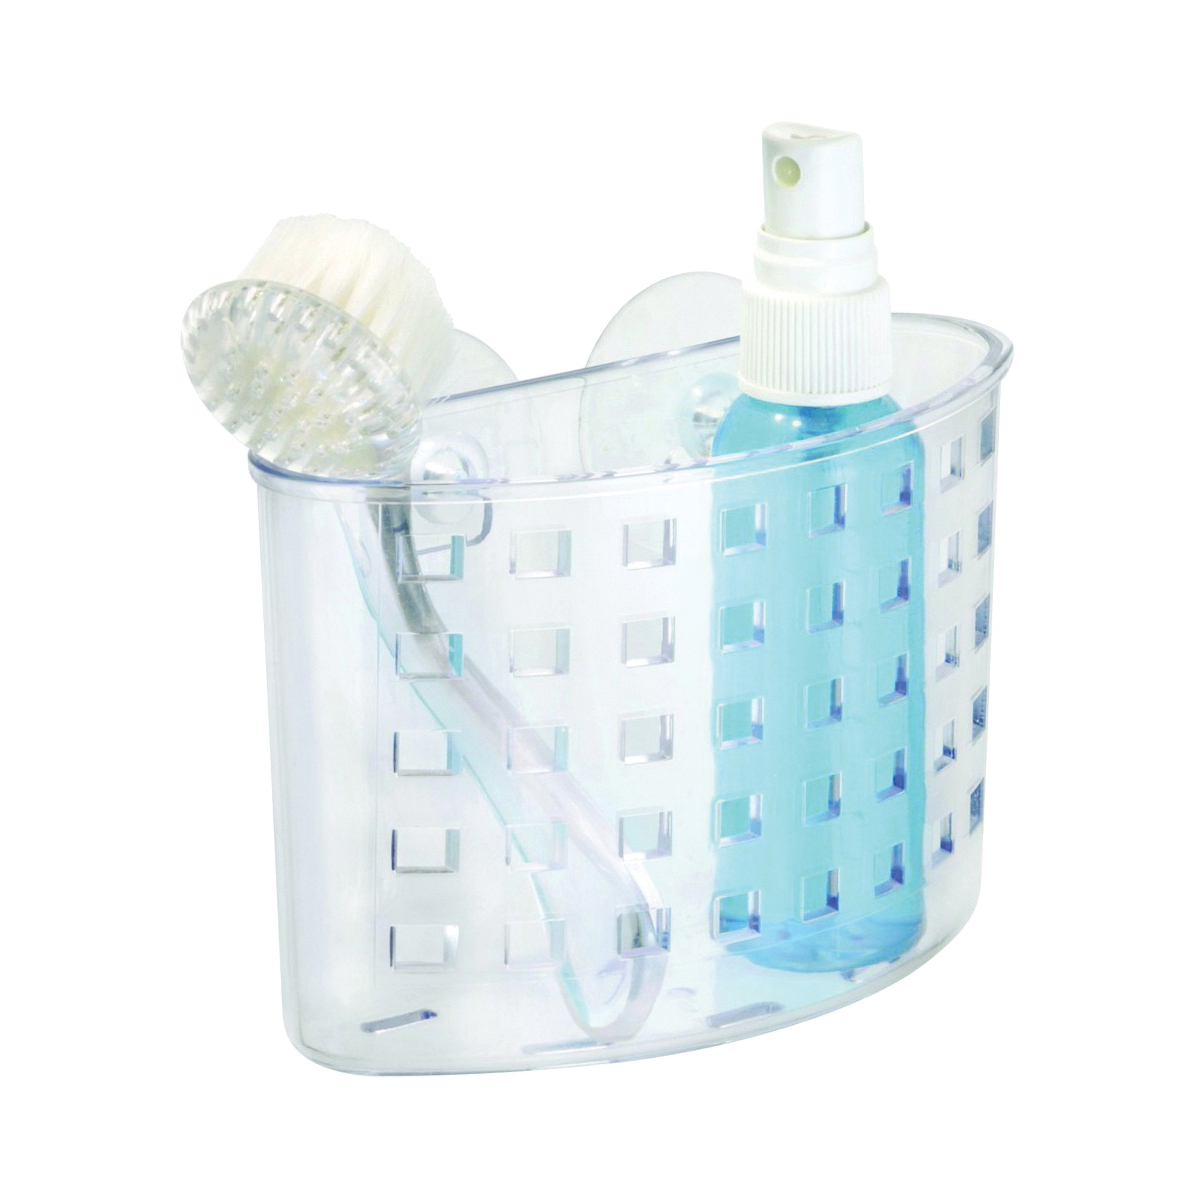 Picture of iDESIGN 23500 Shower Caddy, Plastic, 2-3/4 in OAW, 7 in OAH, 5.4 in OAD